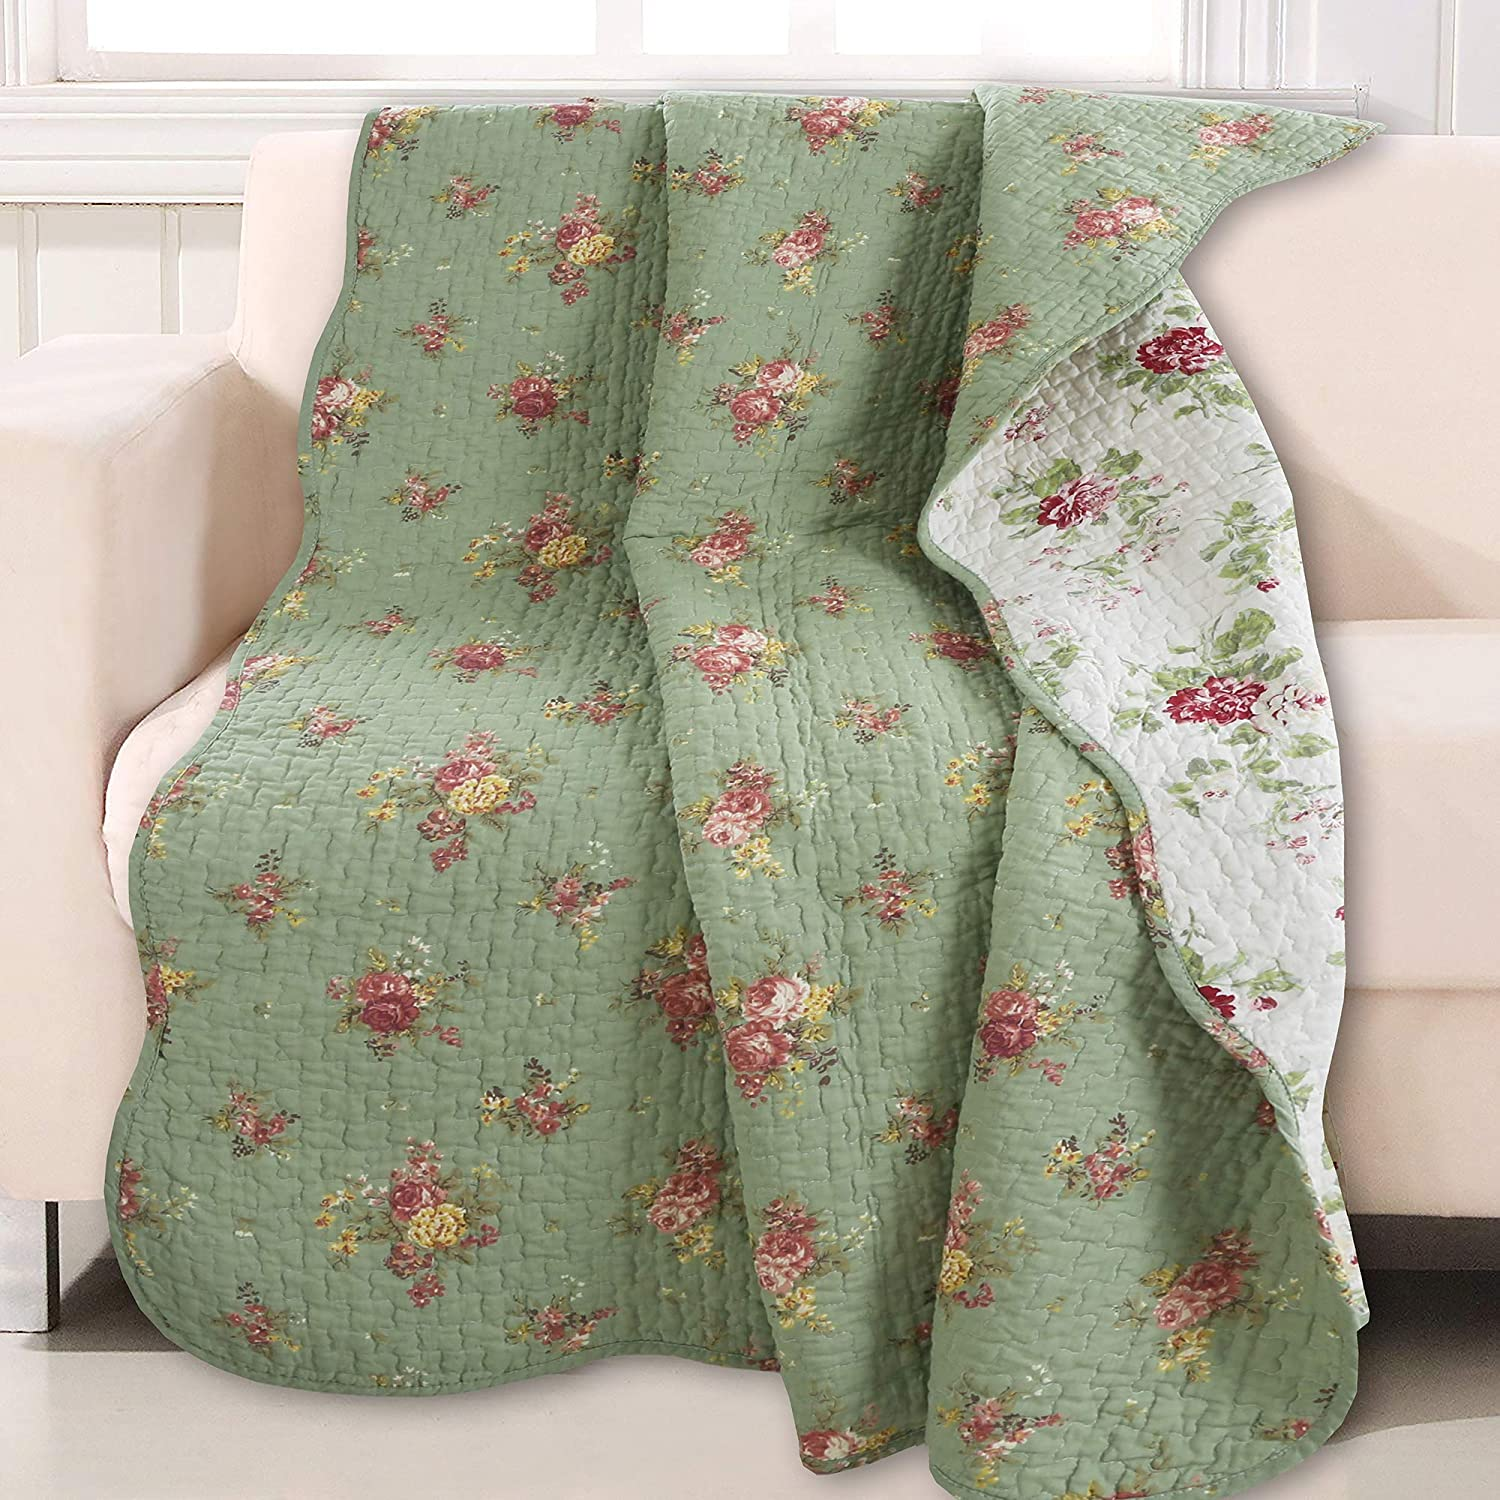 Cozy Line Home Fashions Vintage Floral Quilted Throw 100% Cotton Reversible All Season Throw (Blossom)